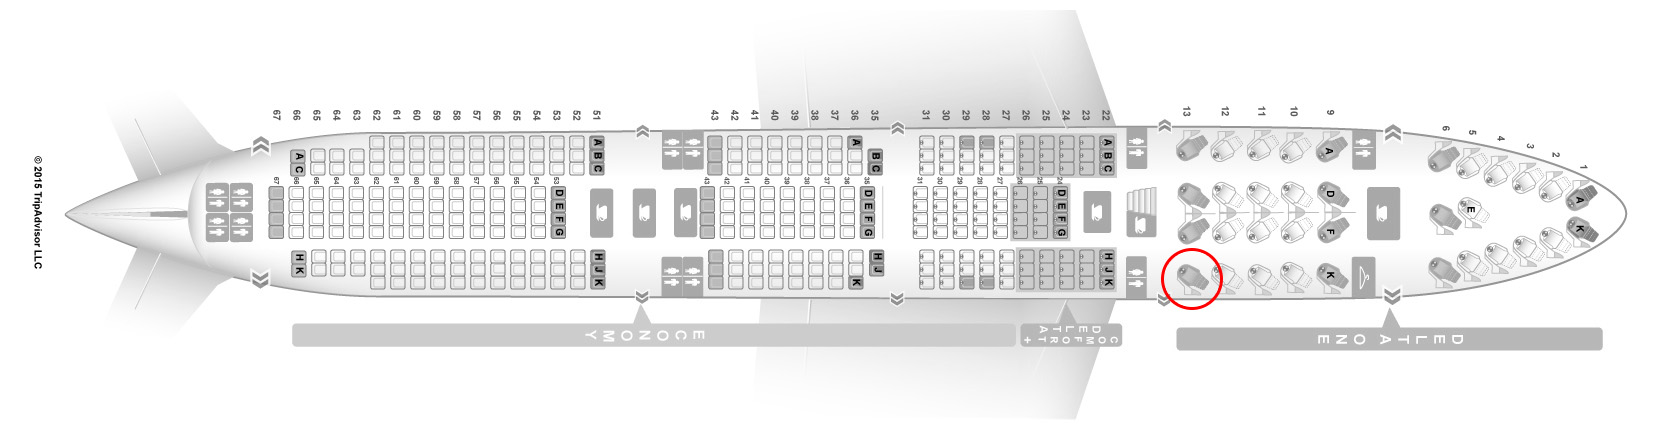 Delta Air Lines 747-400 seat map